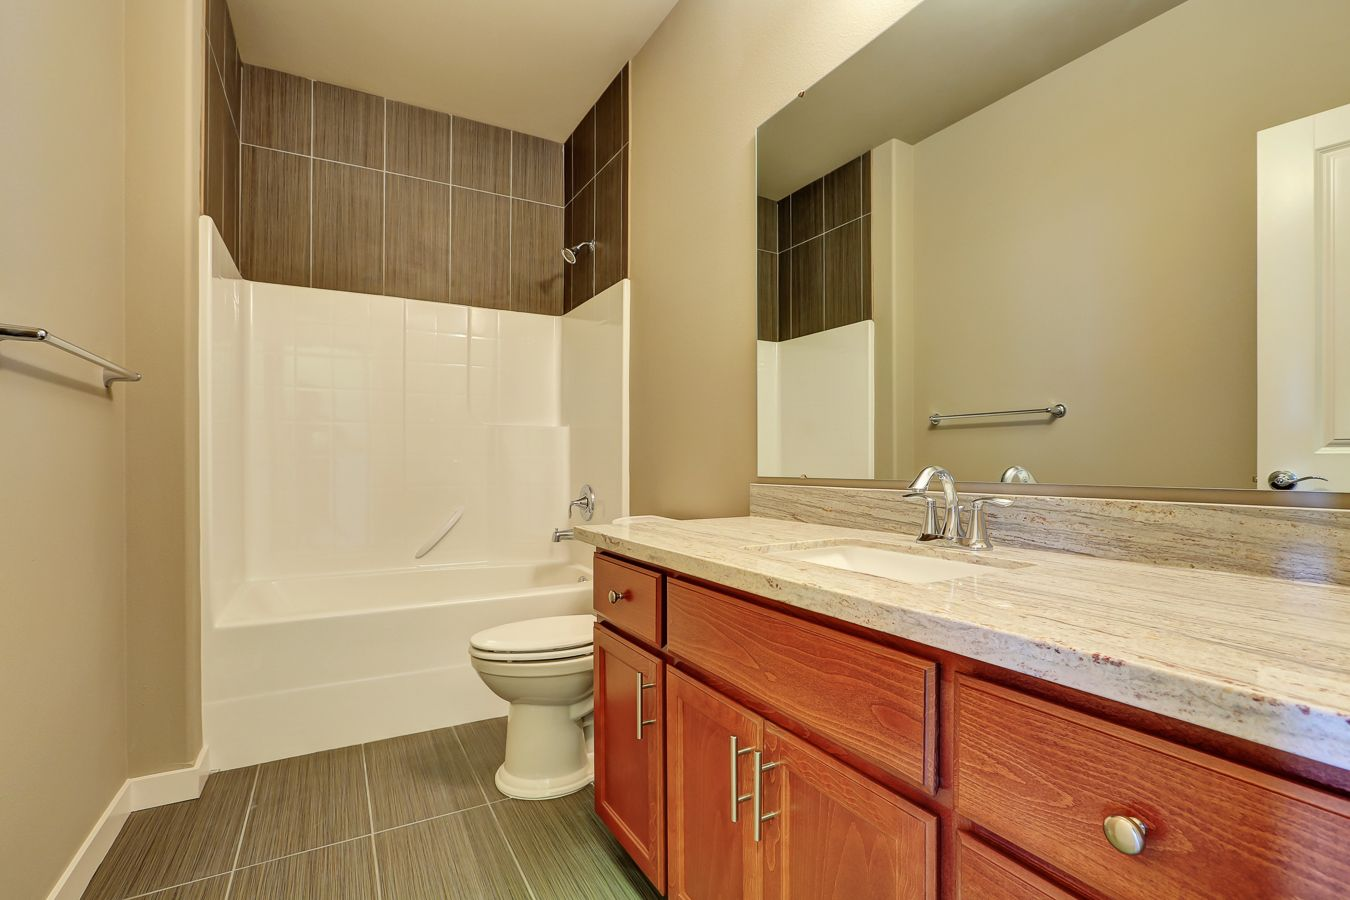 Fiberglass tub shower with tile surround above matching the floor ...